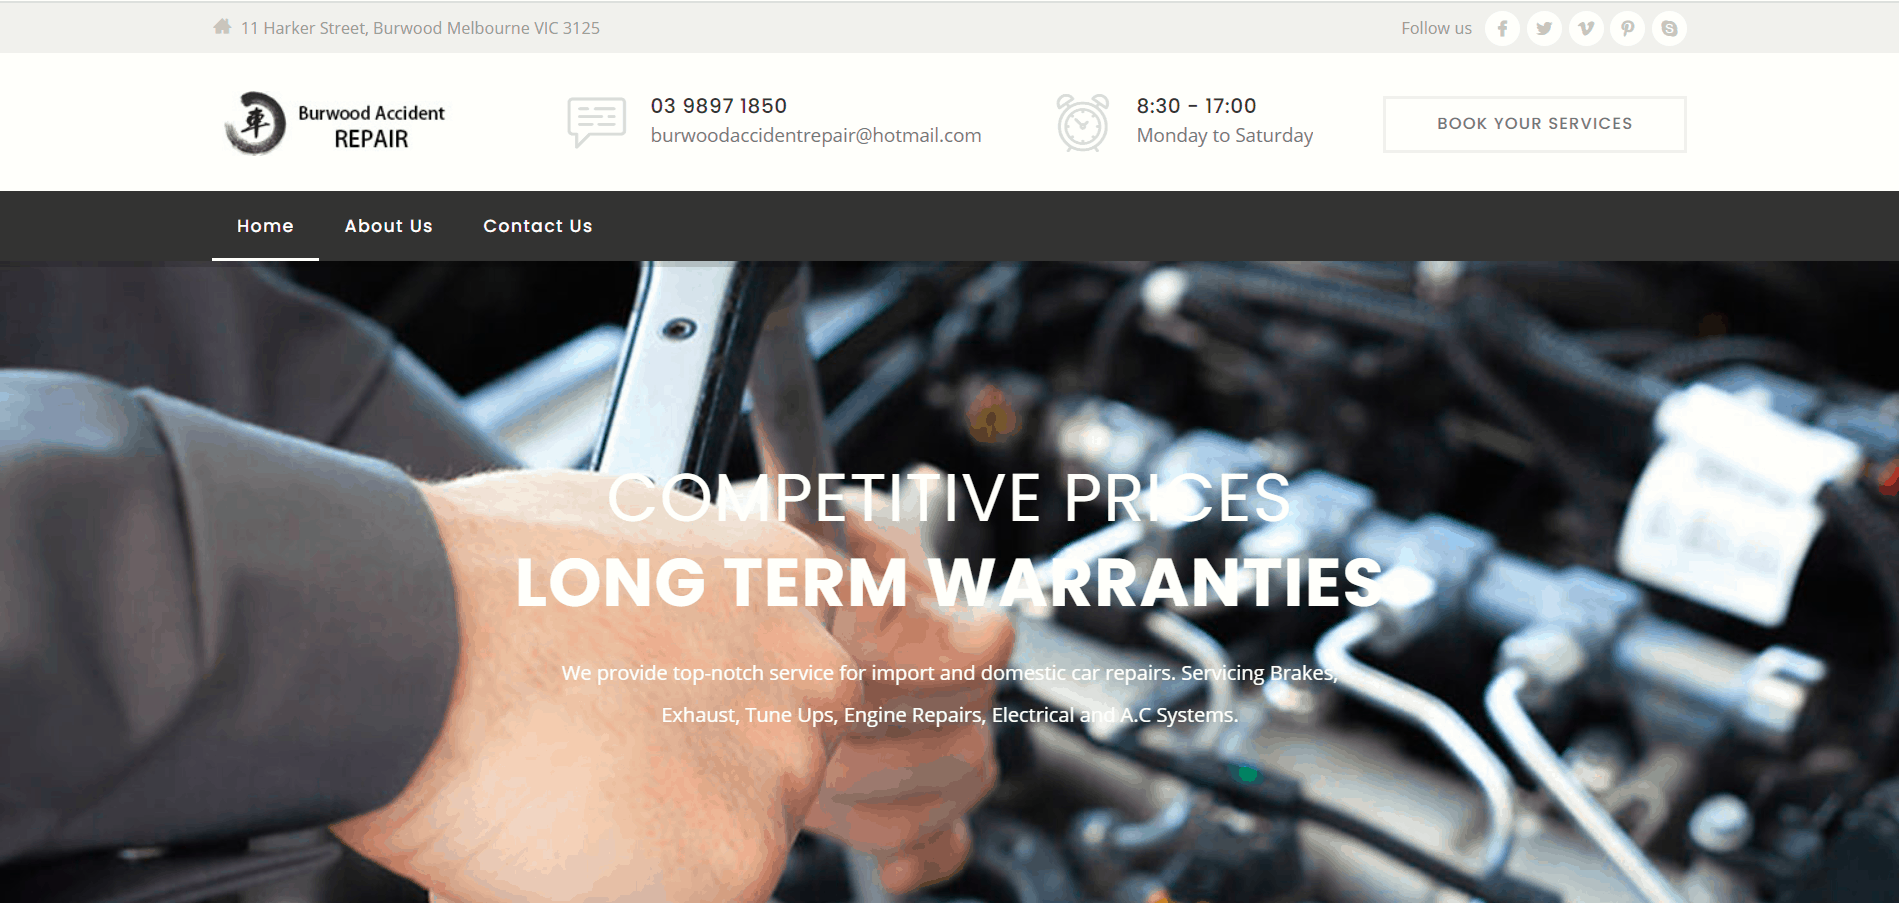 Burwood Accident Repair